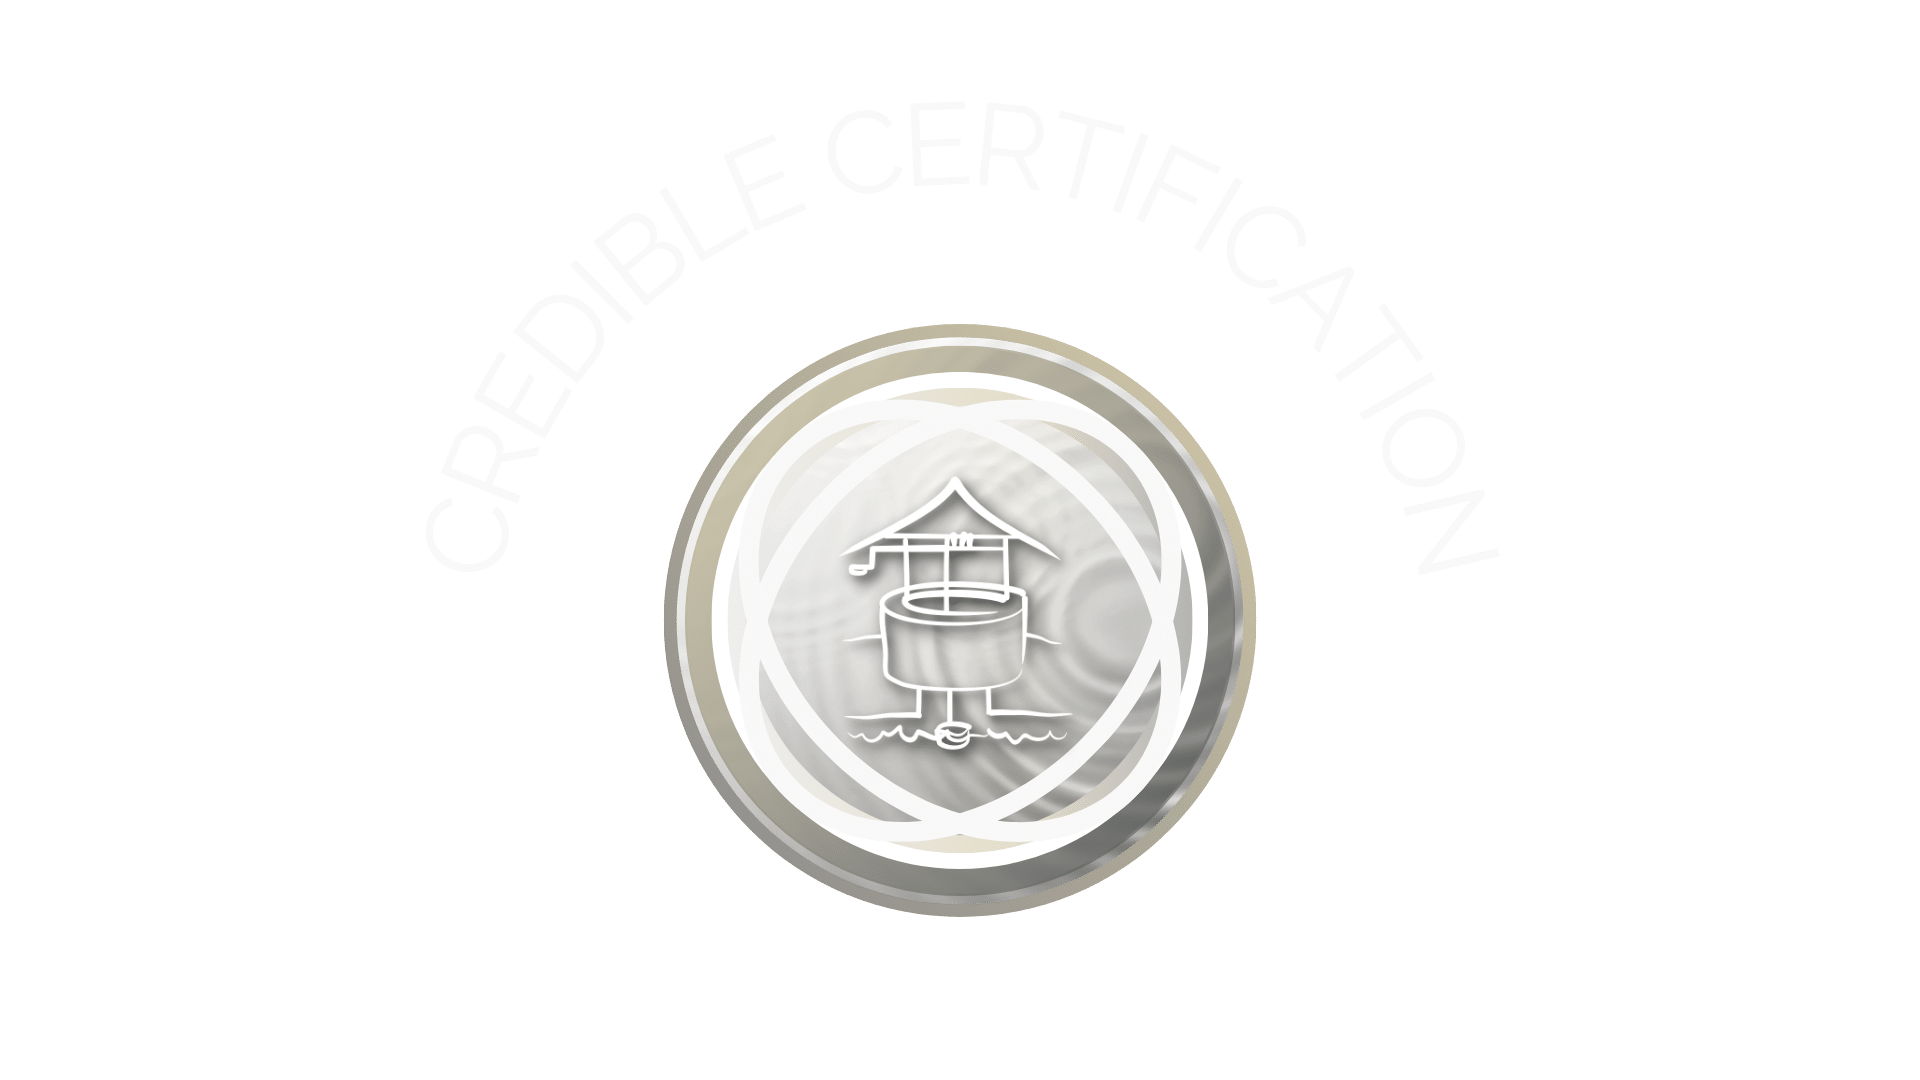 CREDIBLE CERTIFICATION